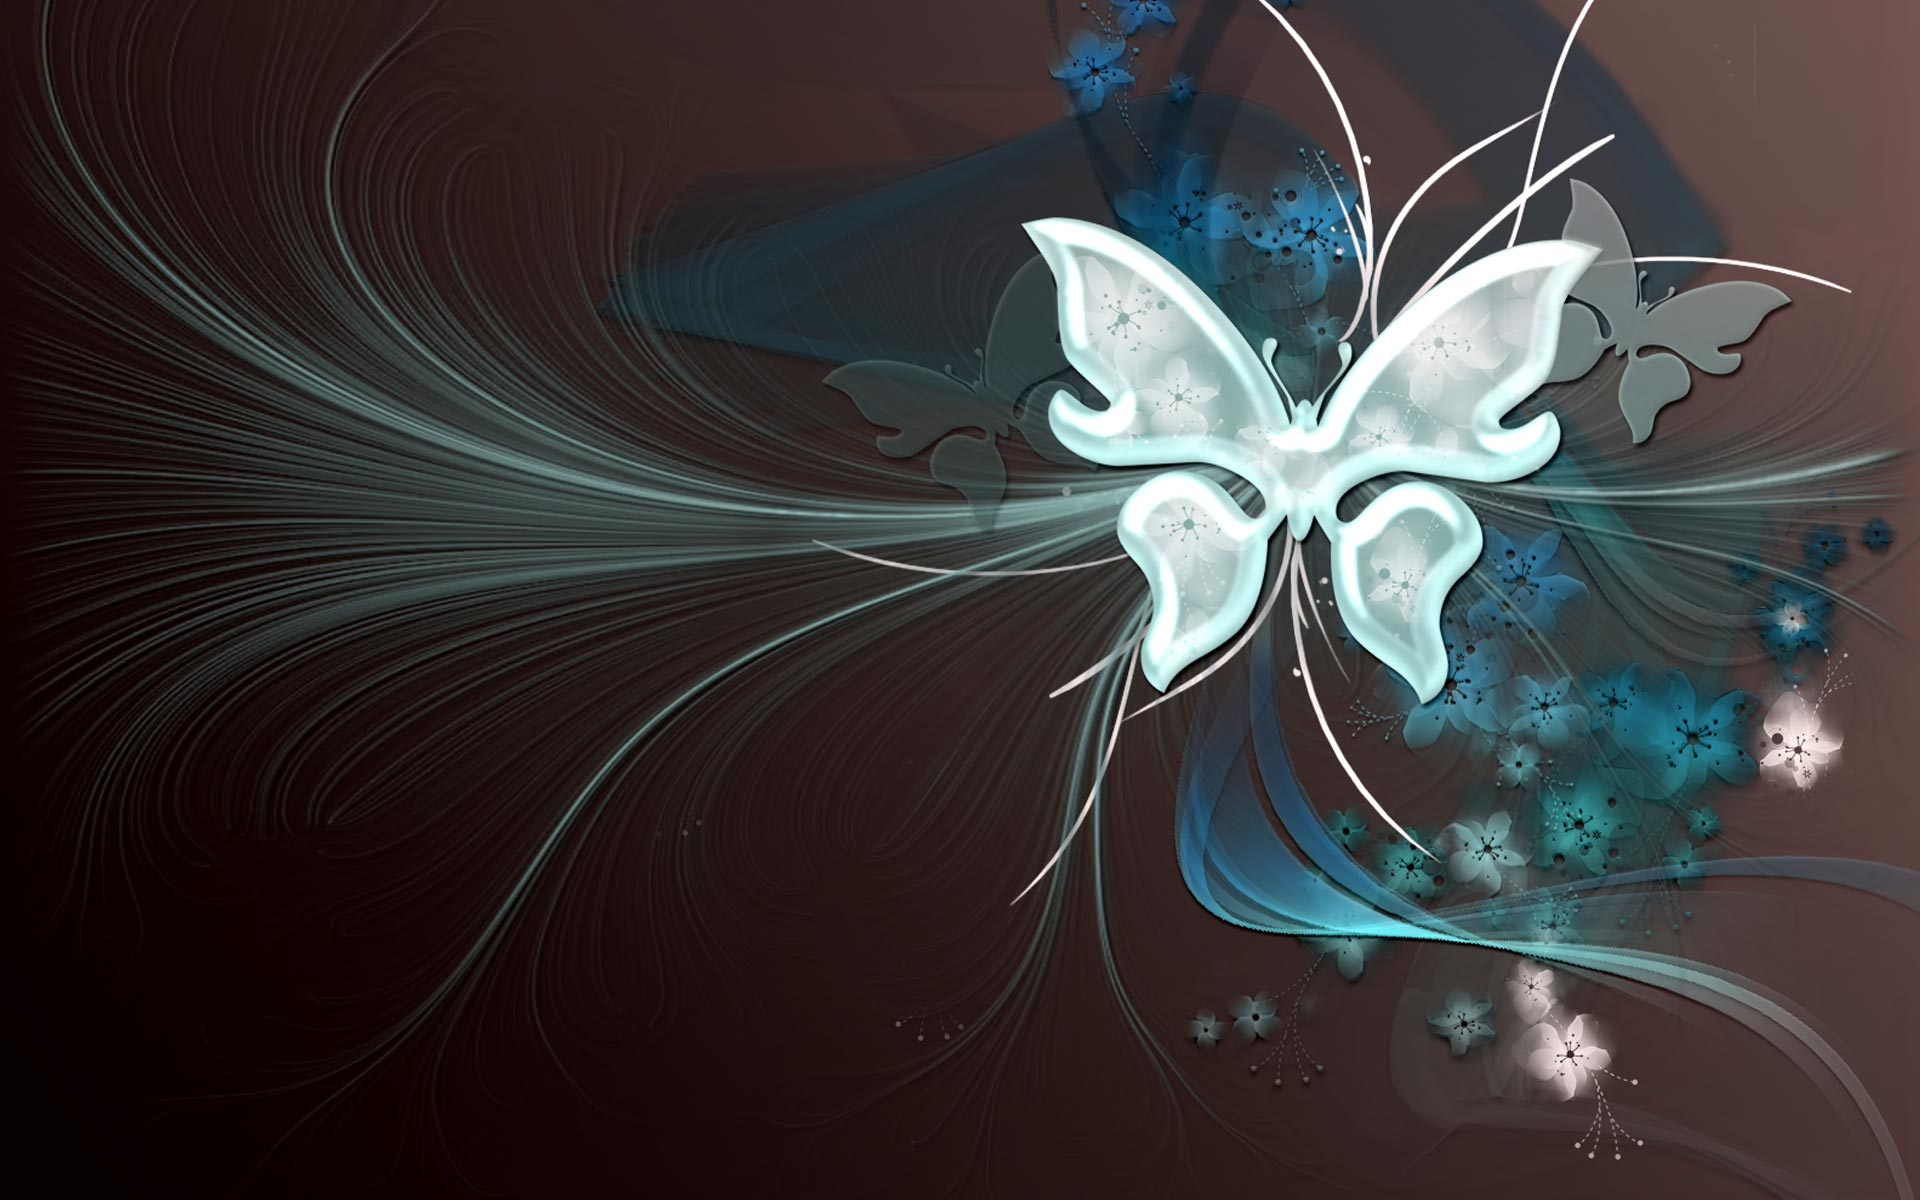 Butterfly vector backgrounds hd Wallpaper and make this wallpaper for 1920x1200